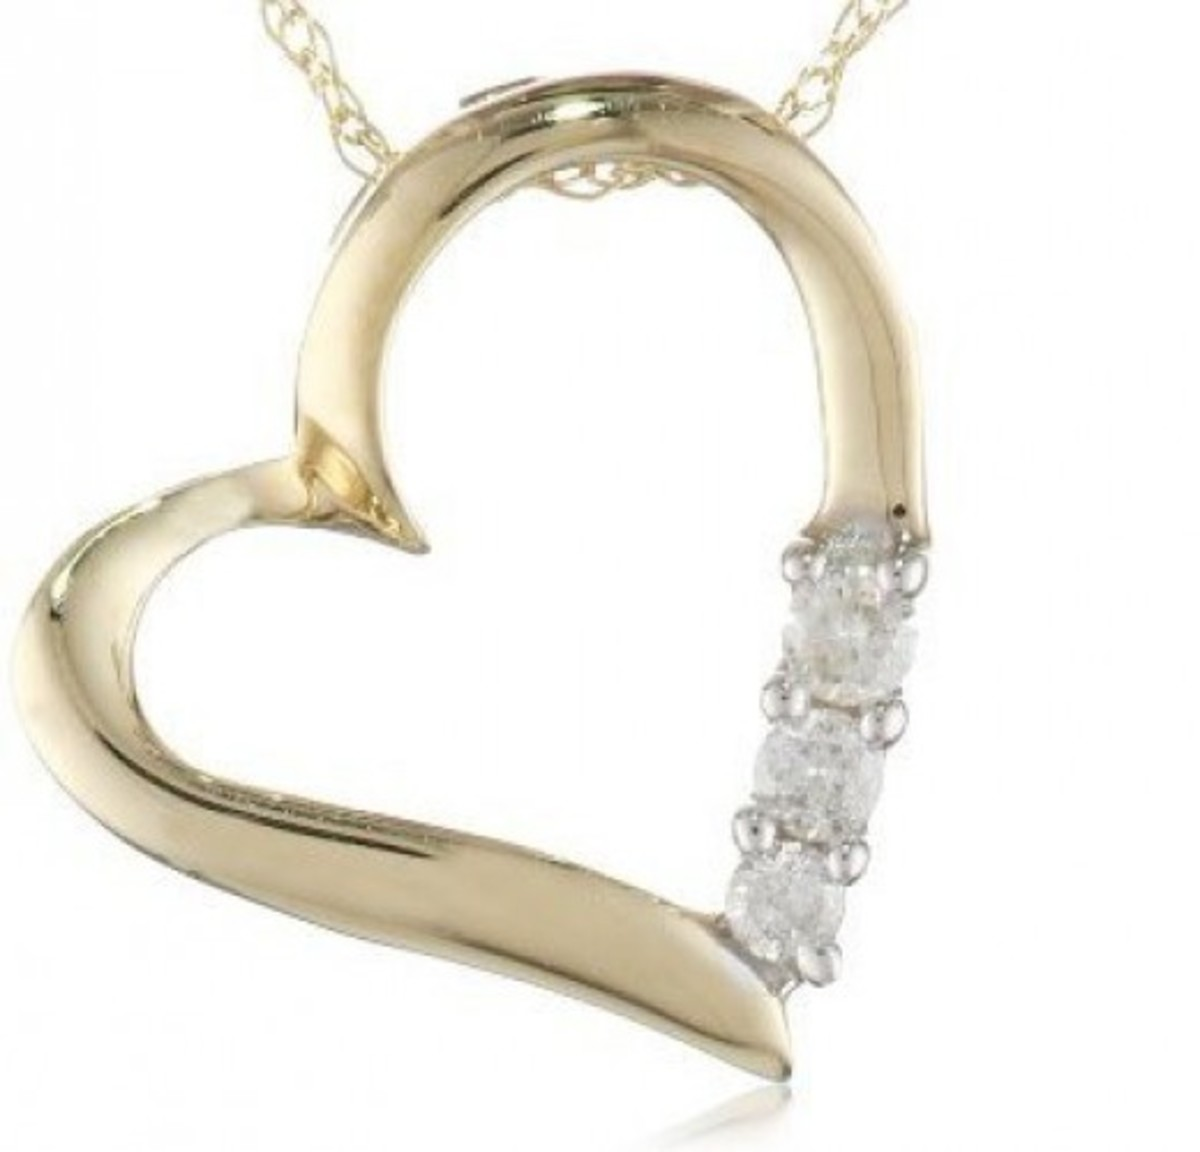 Diamond Heart Necklace Gift for Her